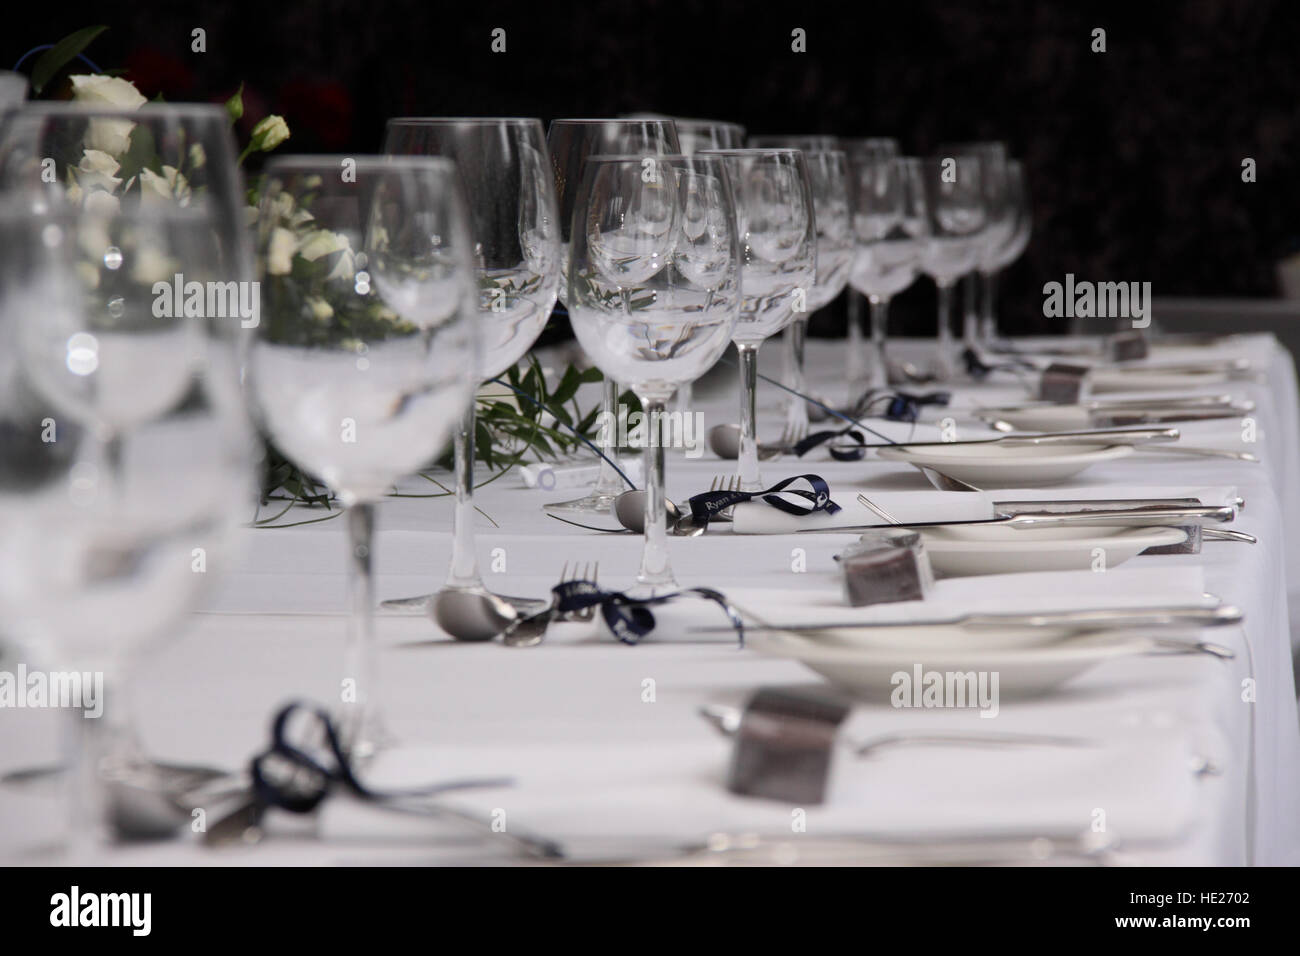 Top table at a wedding reception laid ready with glasses, cutlery and crockery. - Stock Image